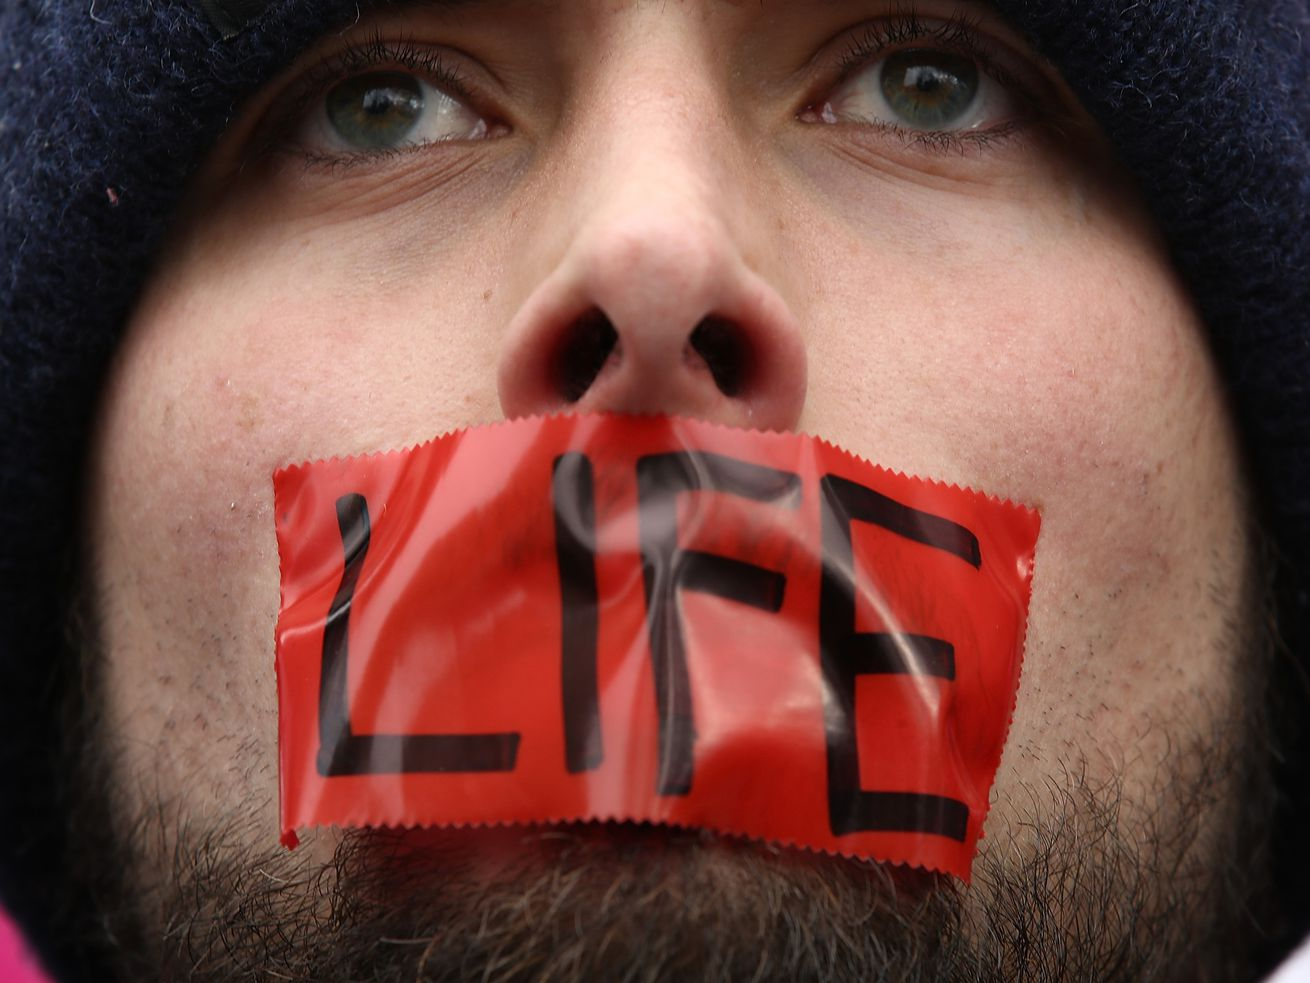 An anti-abortion activist rallies outside of the Supreme Court during the March for Life, January 27, 2017.